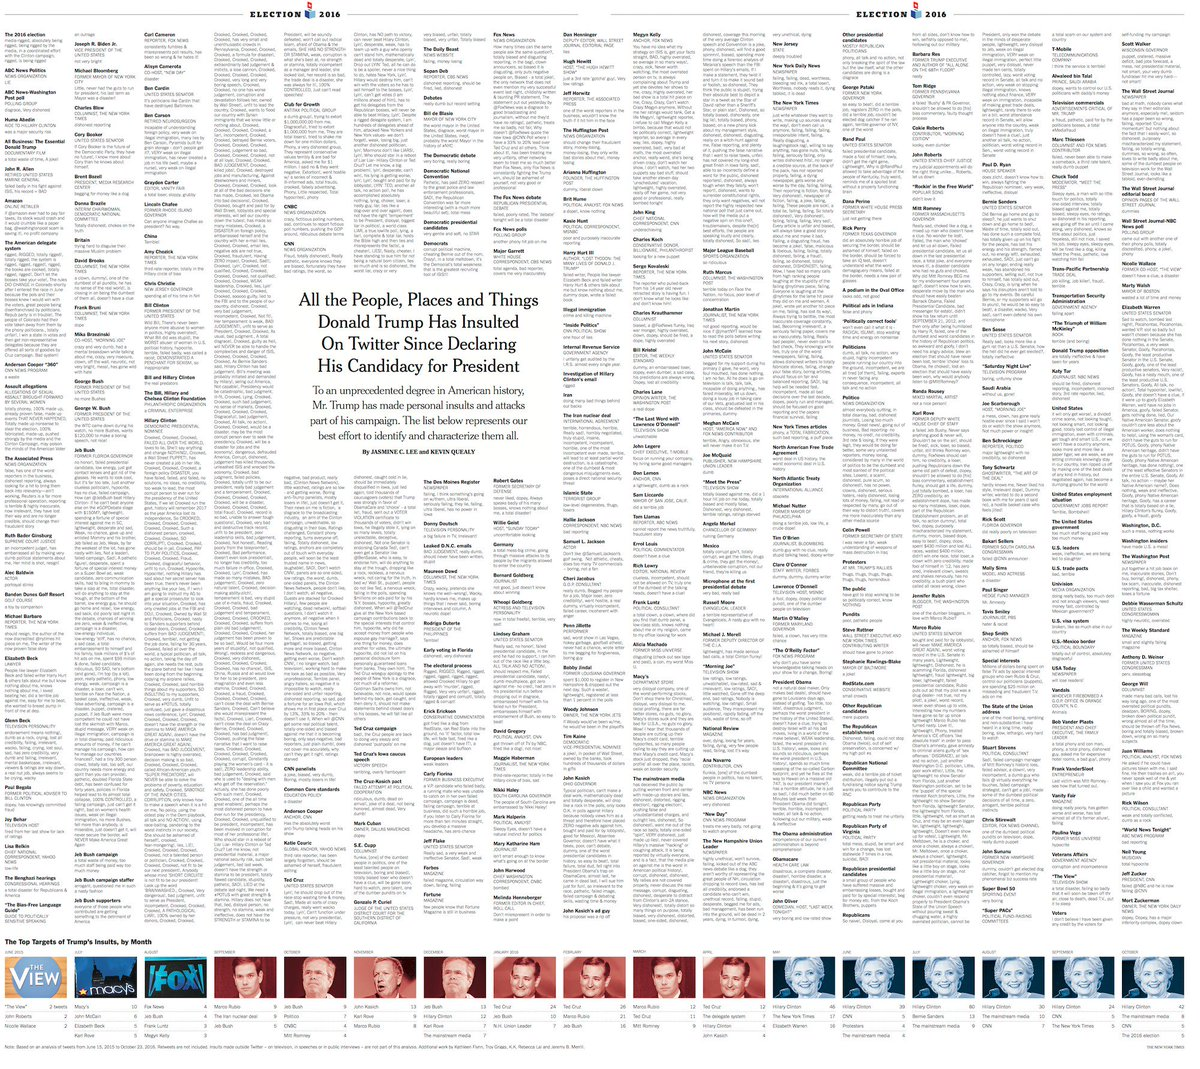 Donald Trump's Twitter insults: The complete list, printed in today's paper https://t.co/zQCa5LnbBj